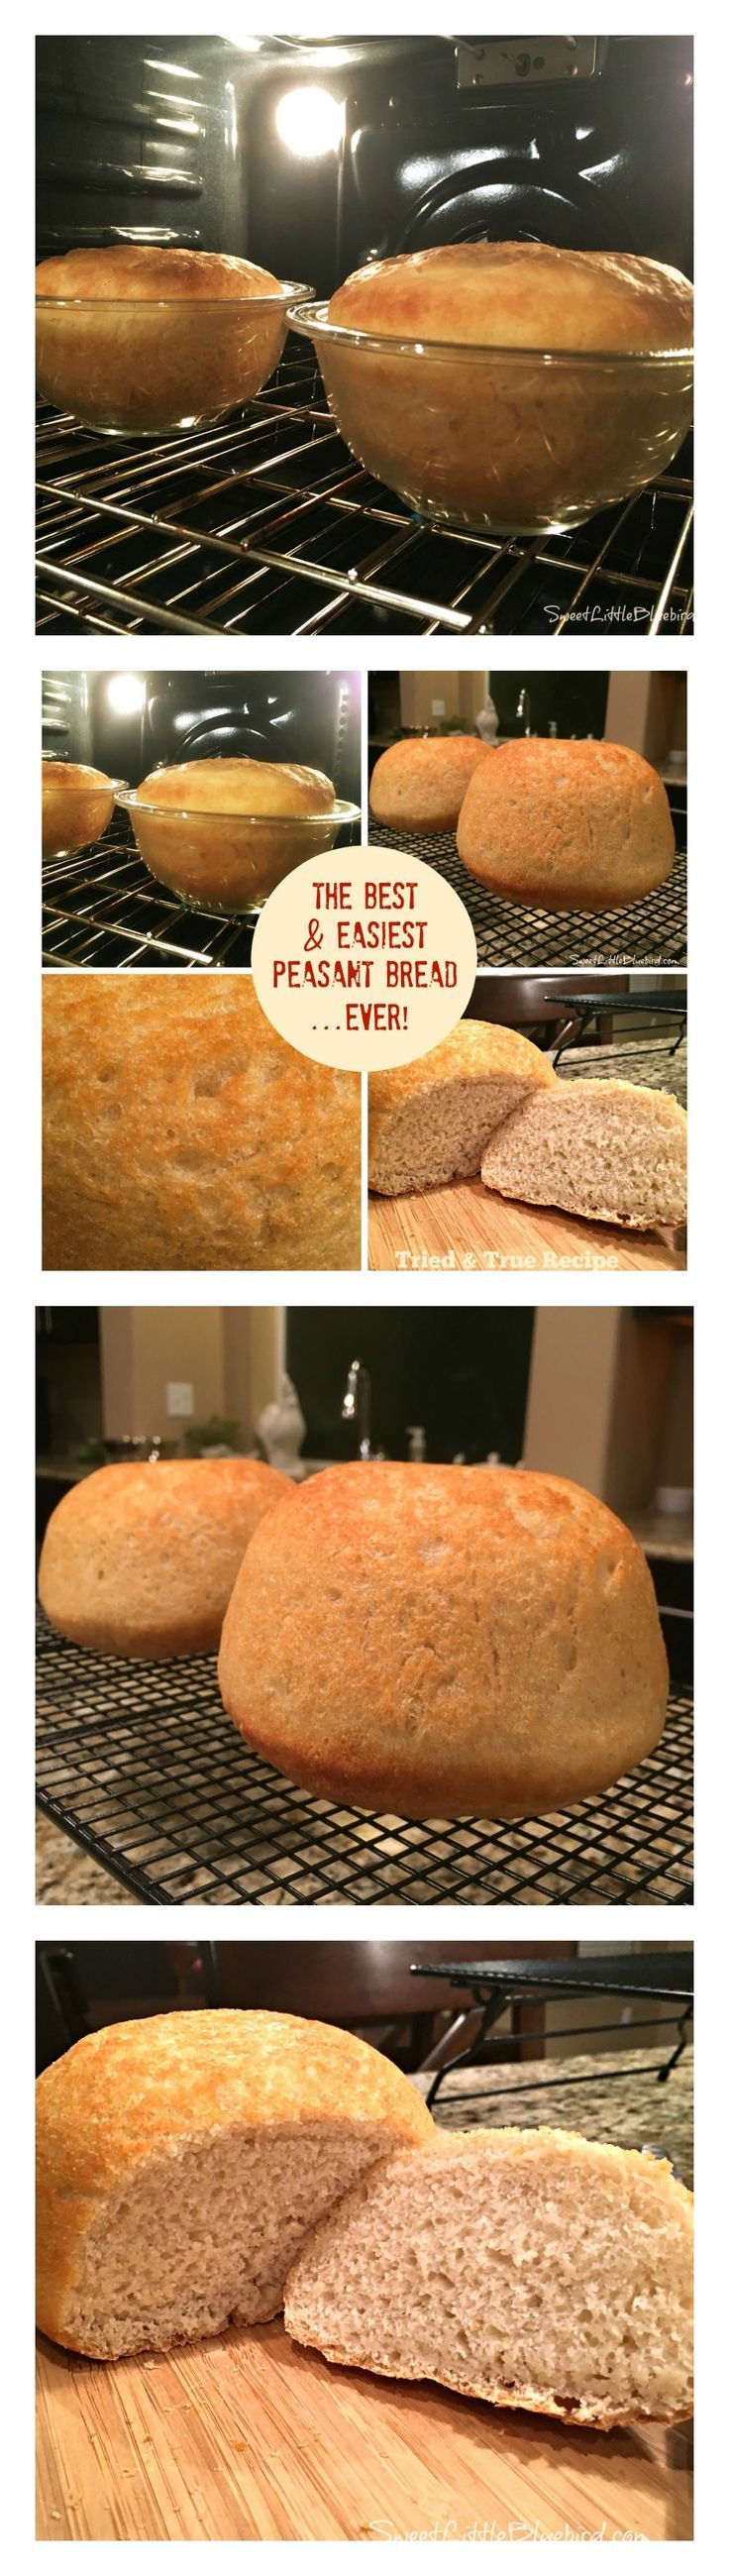 THE BEST- EASIEST PEASANT BREAD....EVER!! No-kneading!! |  SweetLittleBluebird.com